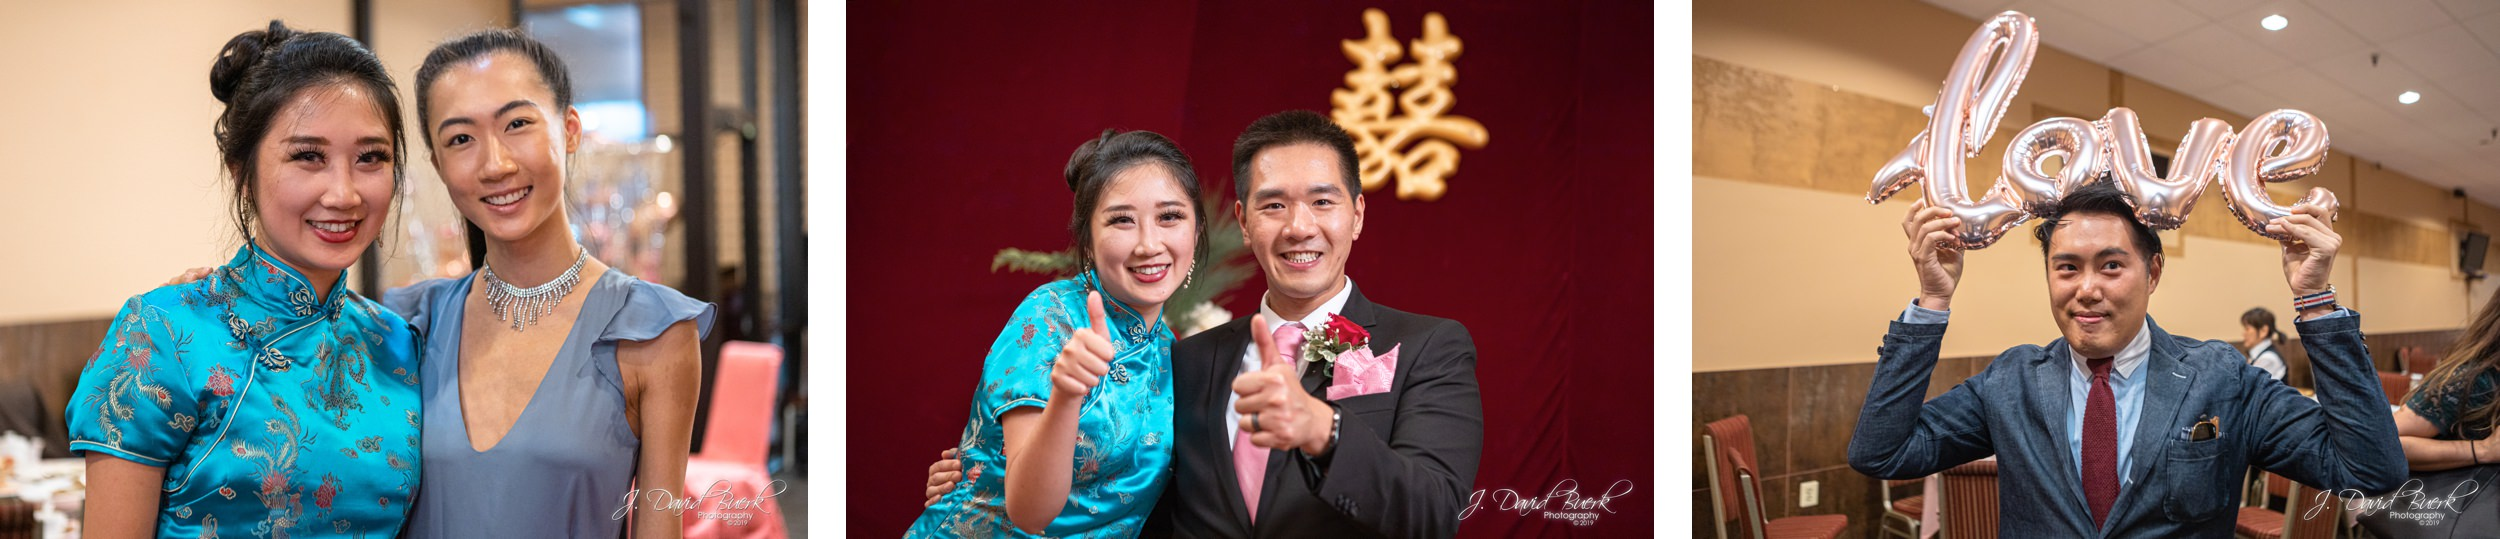 20190706 - David and Tiffany - Married 19.jpg